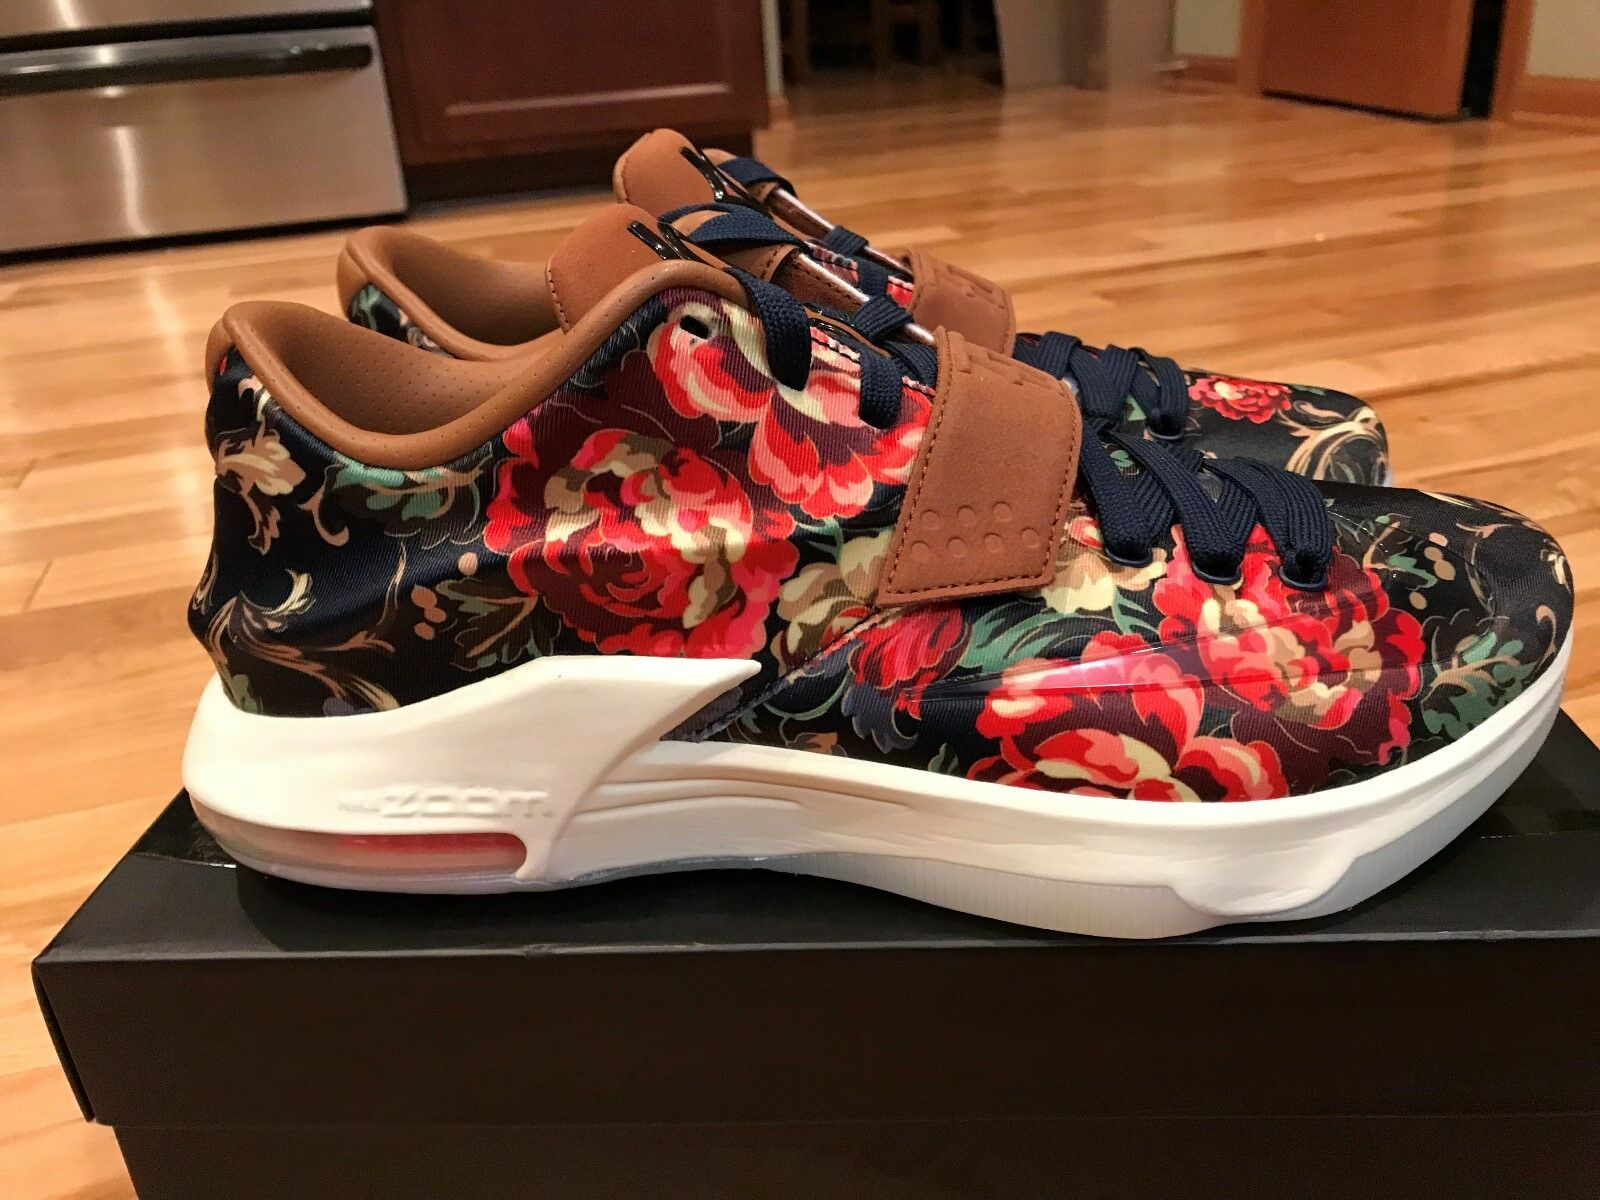 NIKE KD VII EXT FLORAL QS MIDNIGHT NAVY/BLACK-HAZELNUT 726438-400 SIZE 10